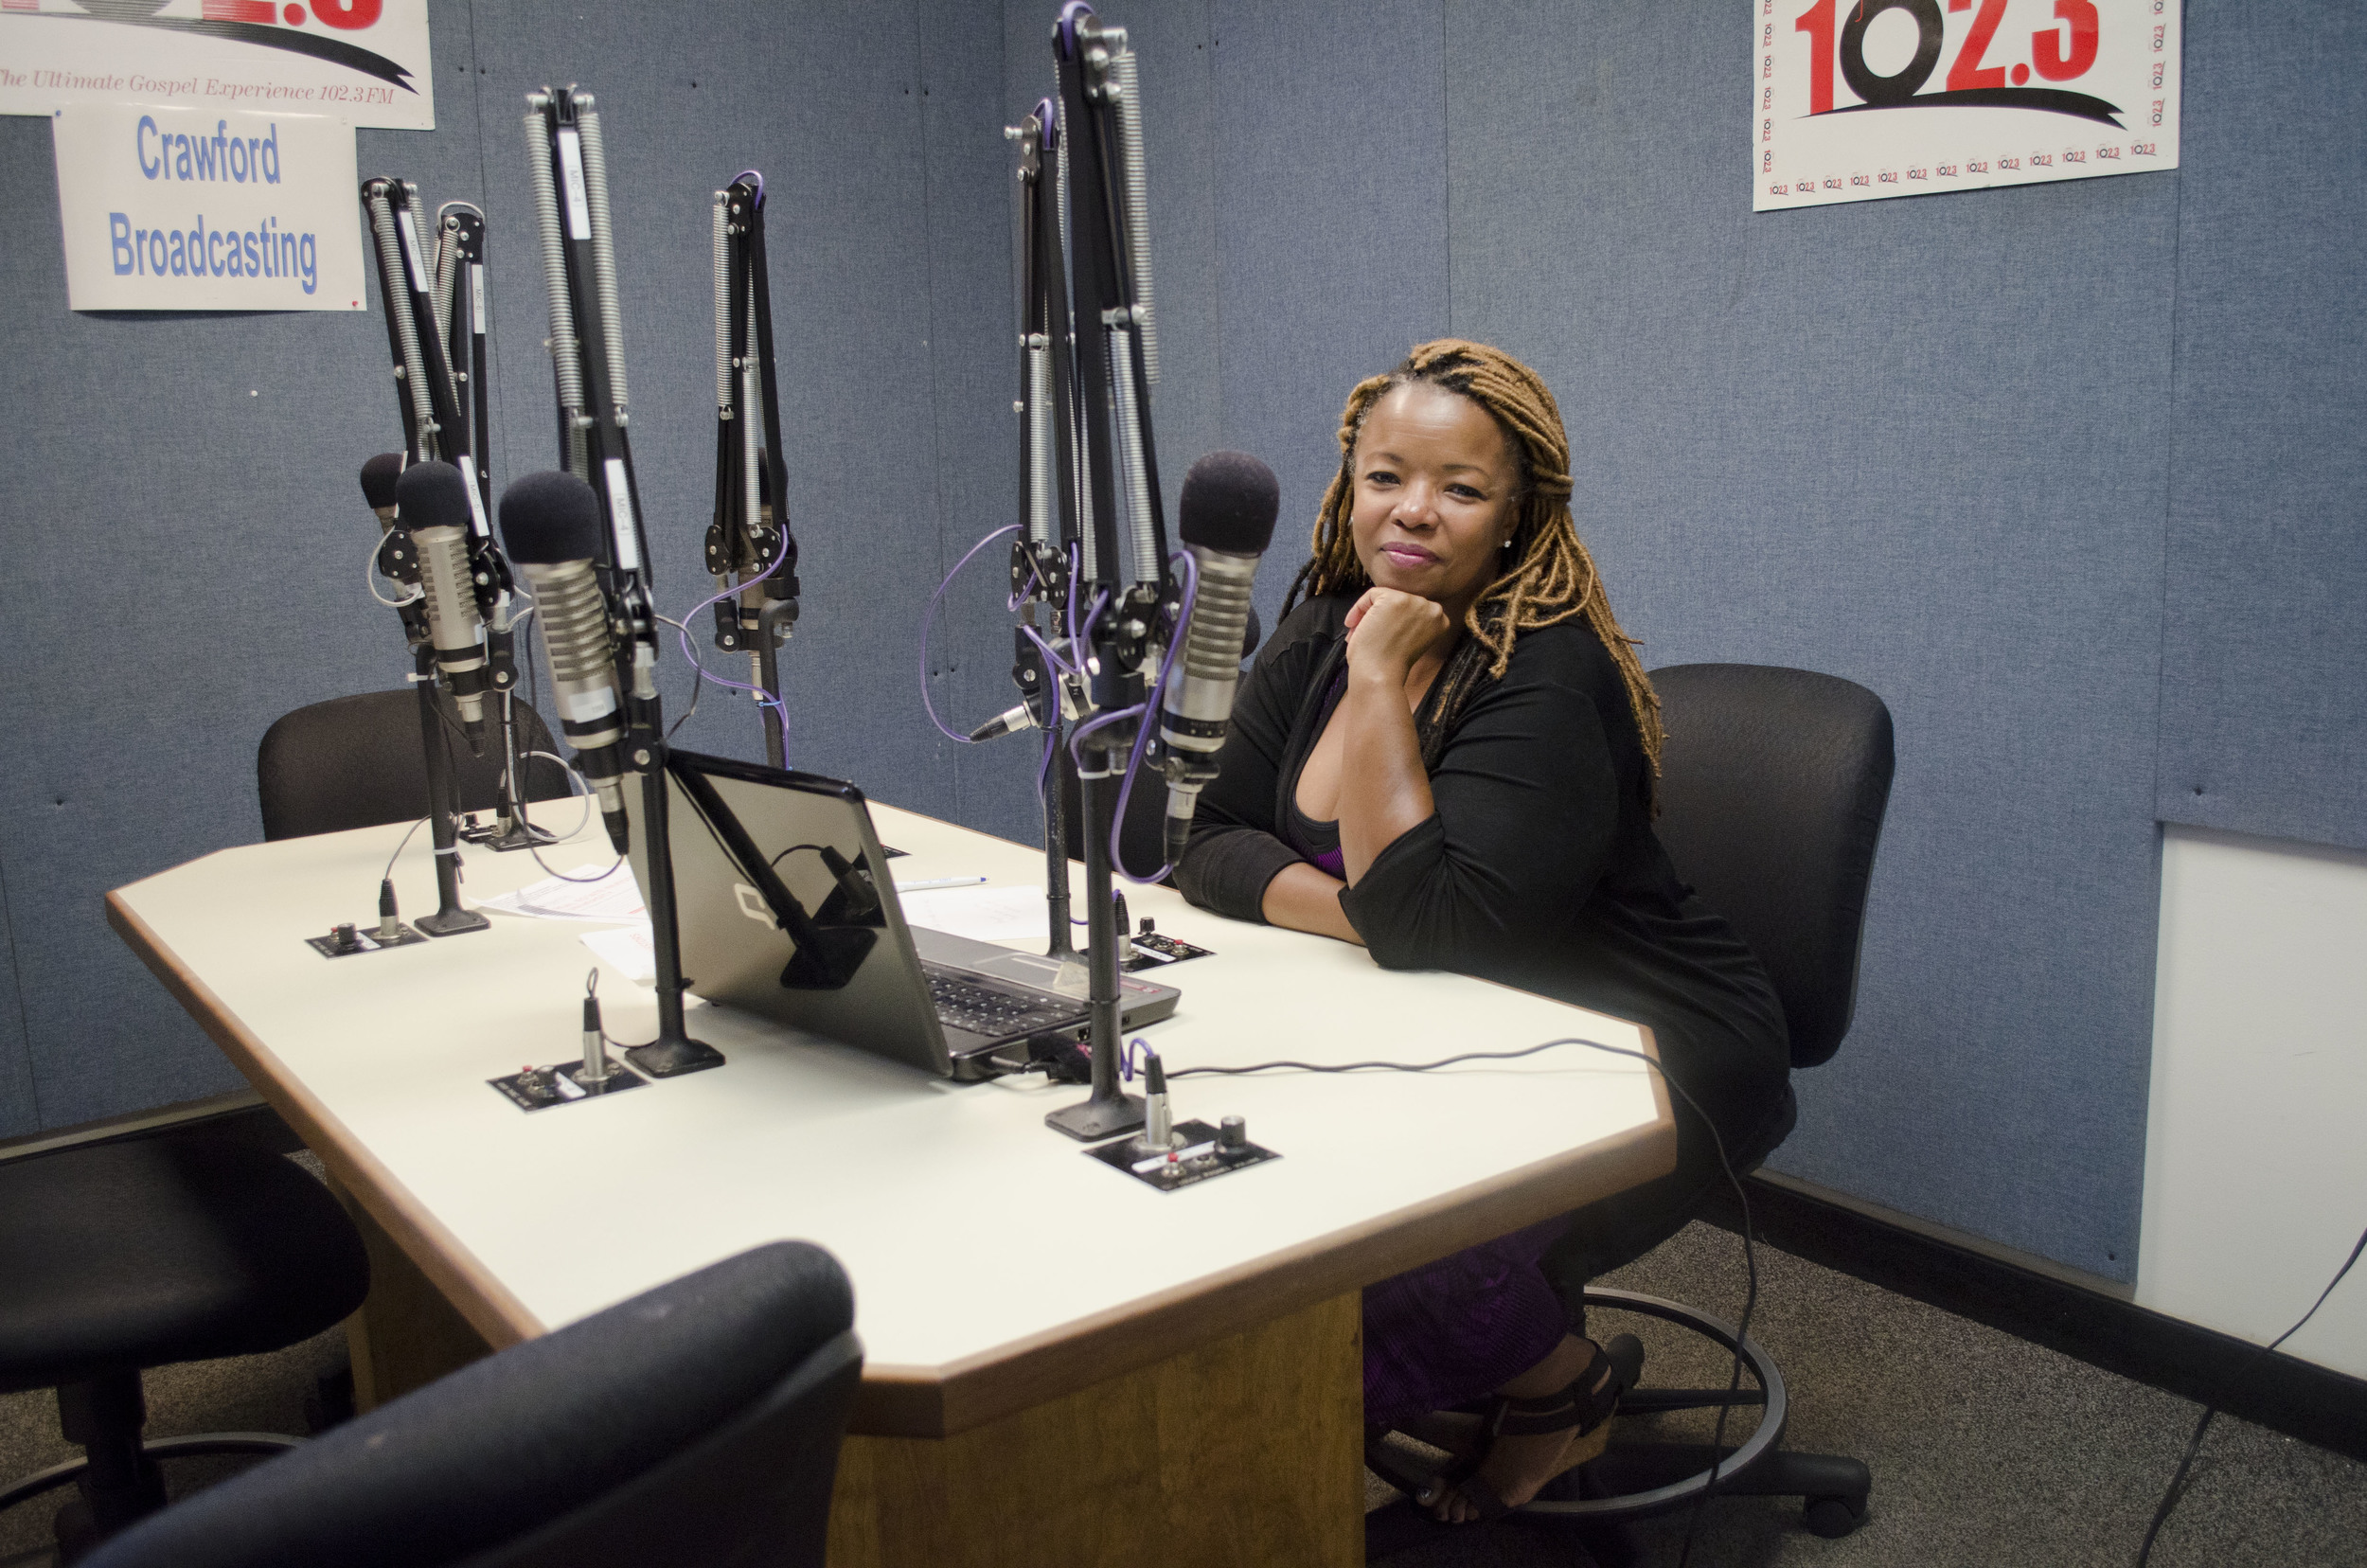 A Day in the Studio at 102.3